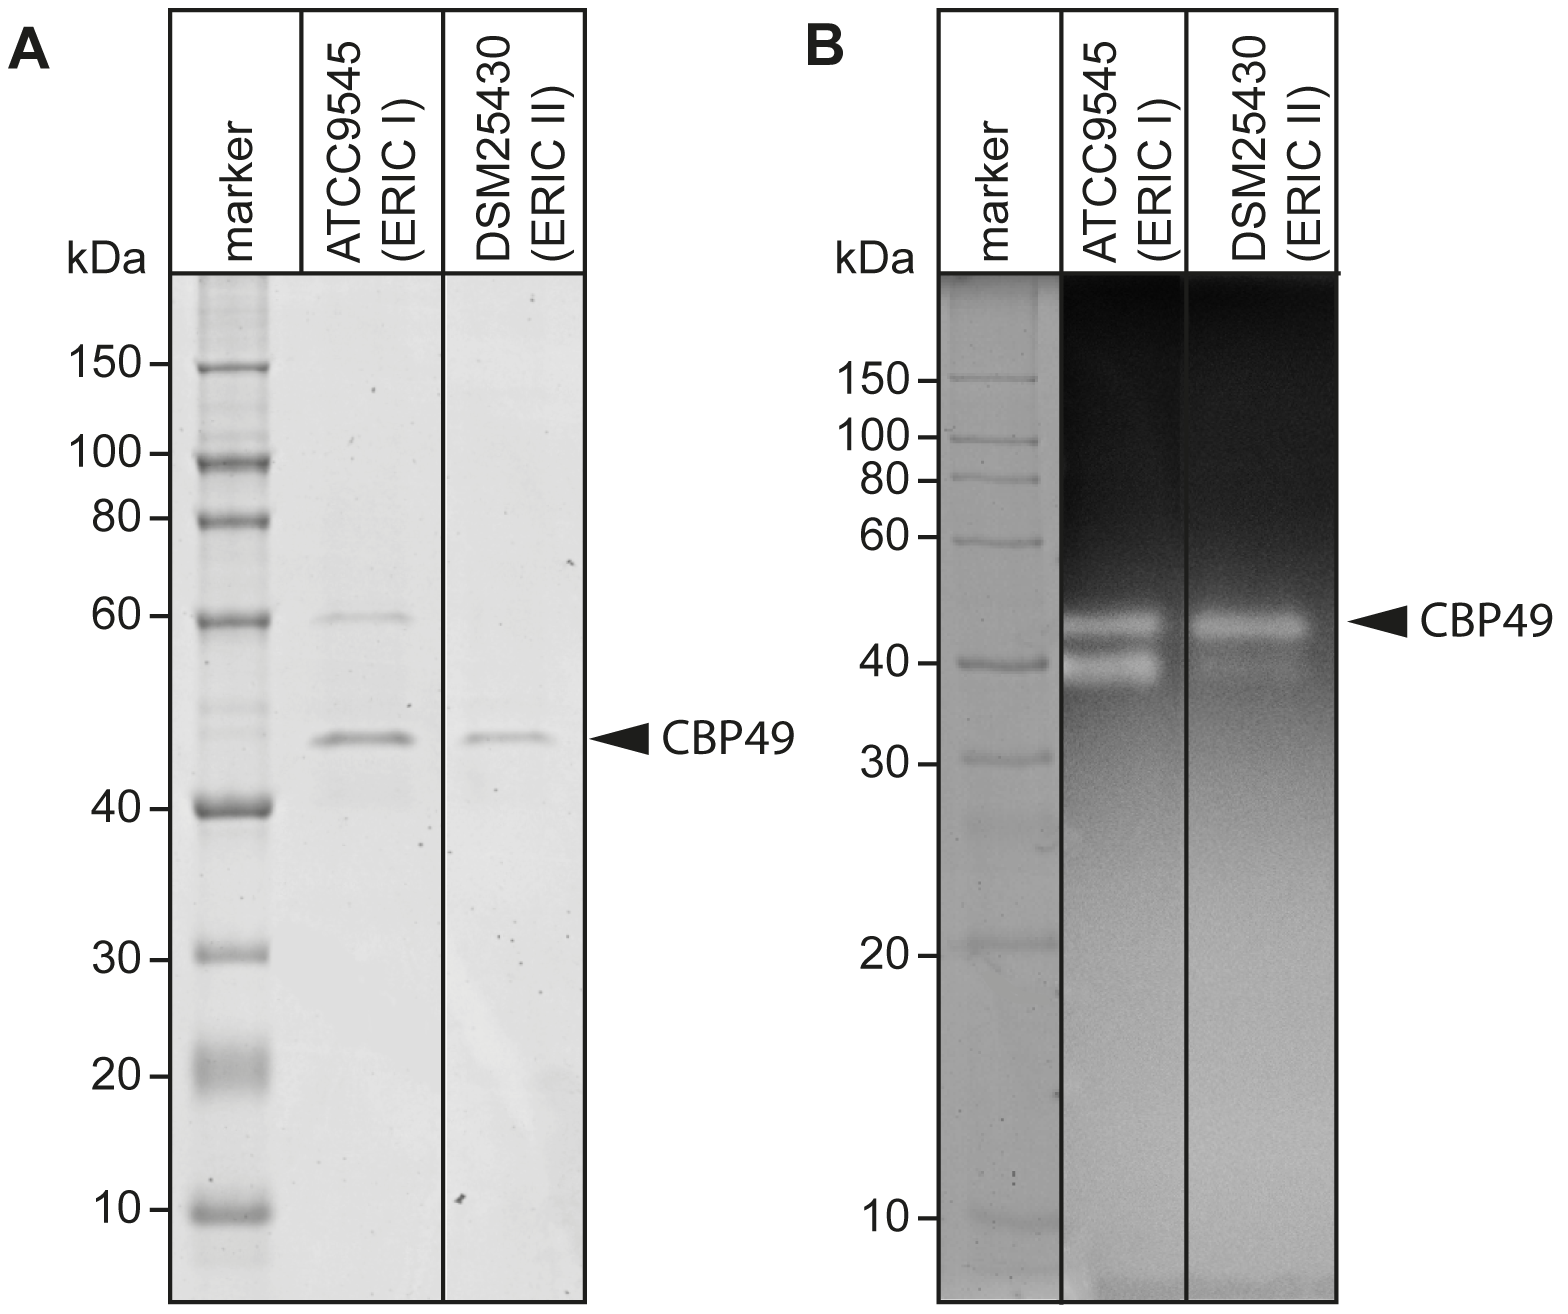 Identification of chitin-binding and –degrading proteins in the supernatants of cultured <i>P. larvae</i>.